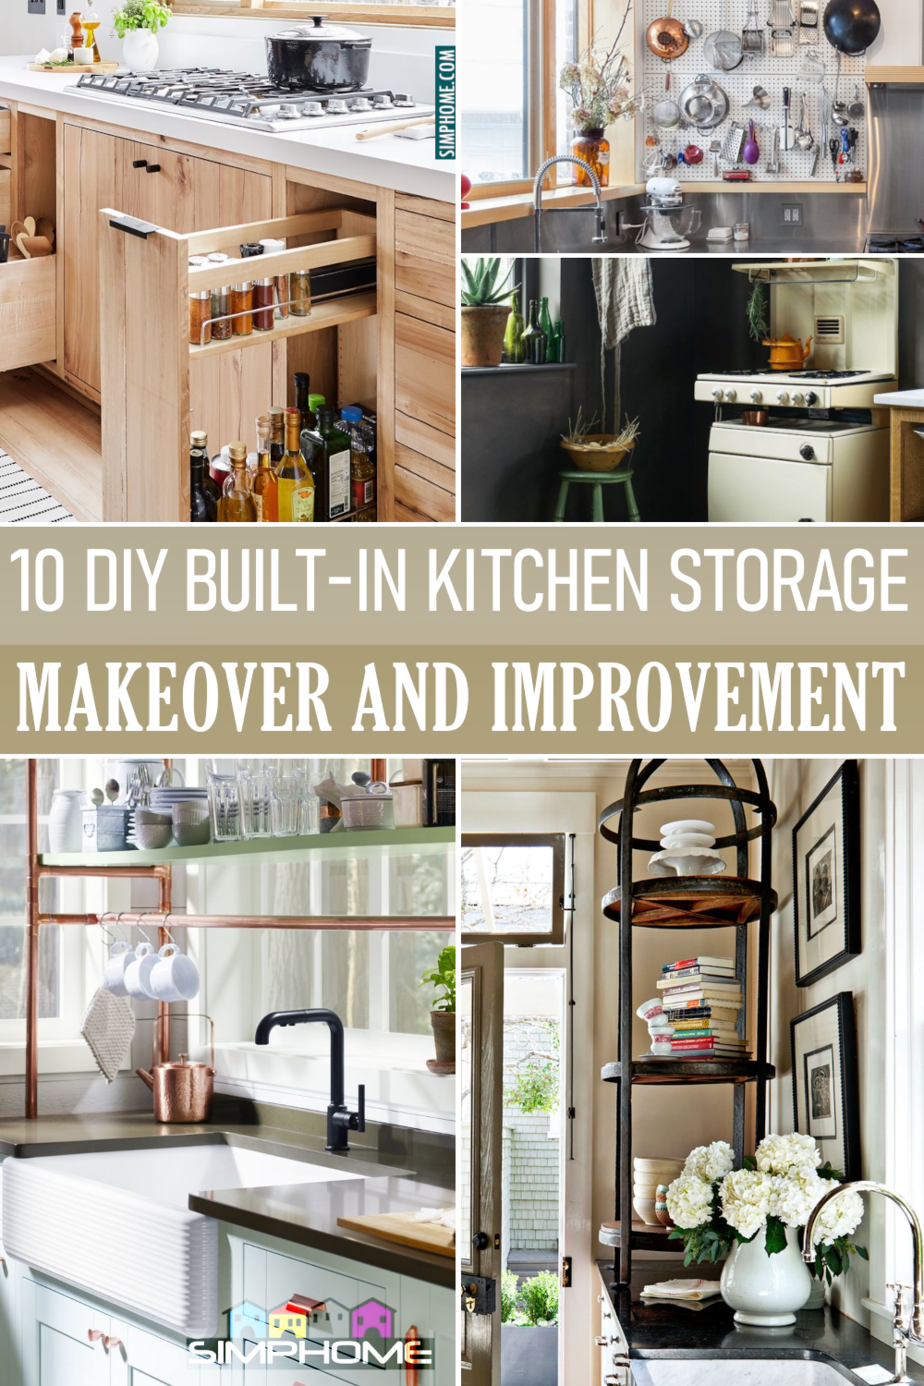 10 DIY Built In Kitchen Storage Ideas via Simphome.comFeatured